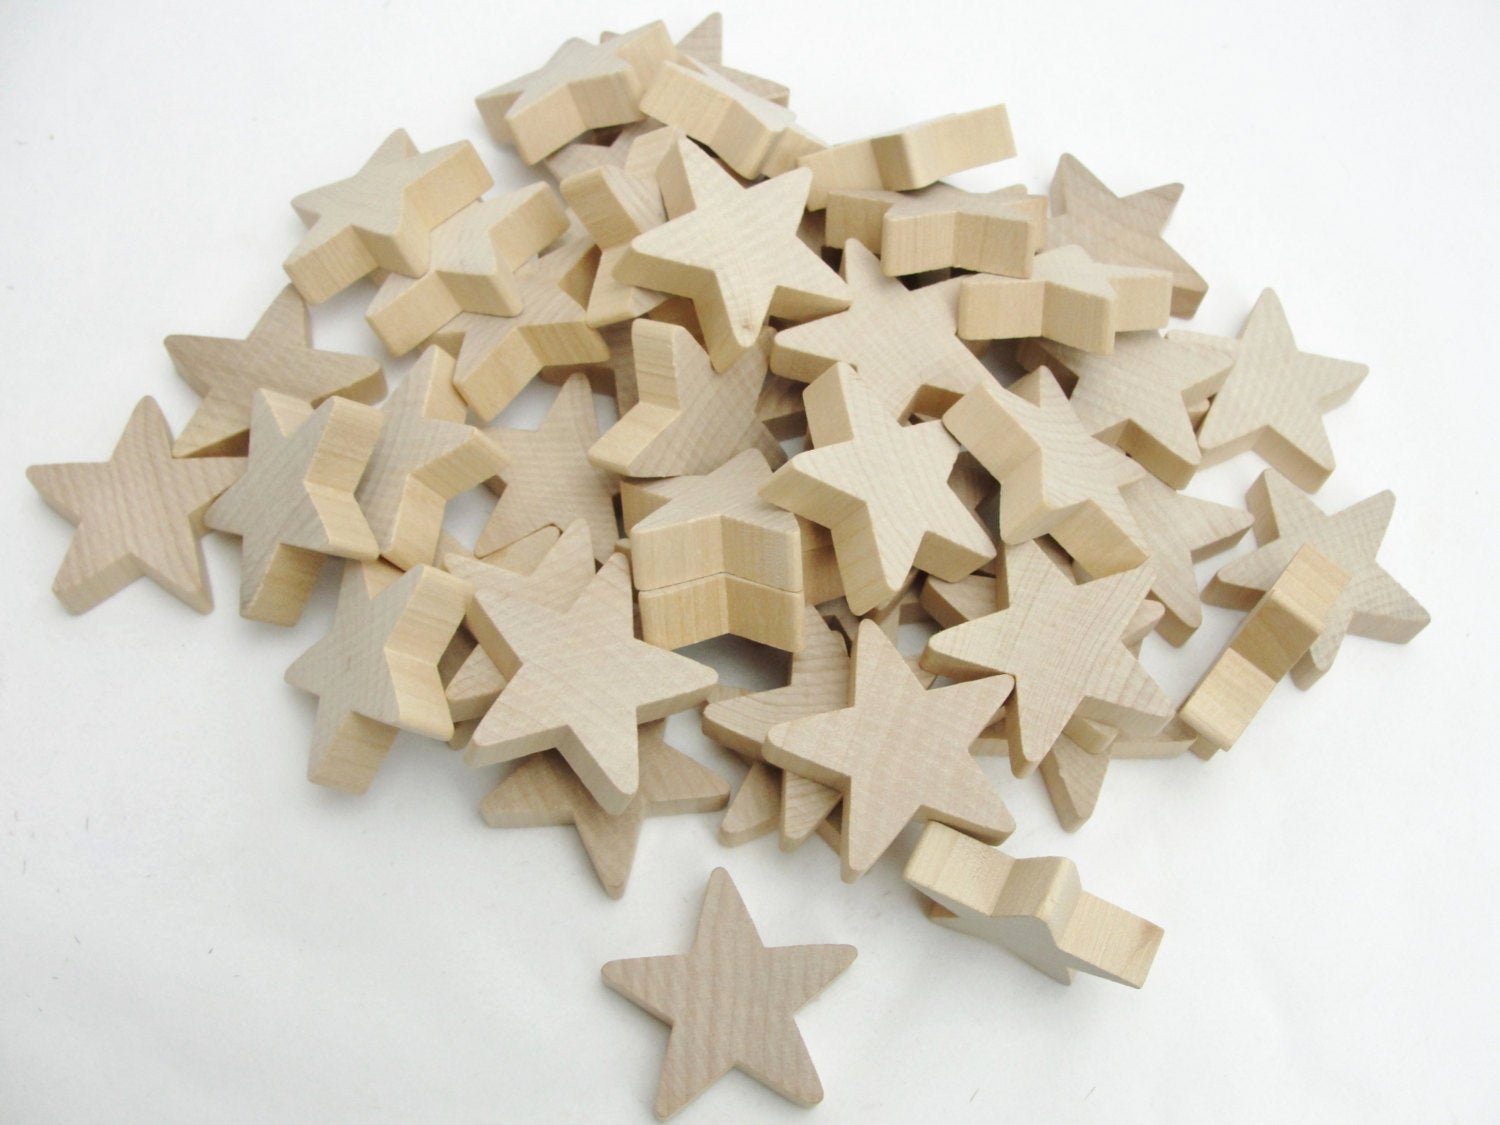 2 Inch Star Inspirational 50 Traditional 2 Inch Star Wood 1 2 Thick Chunky